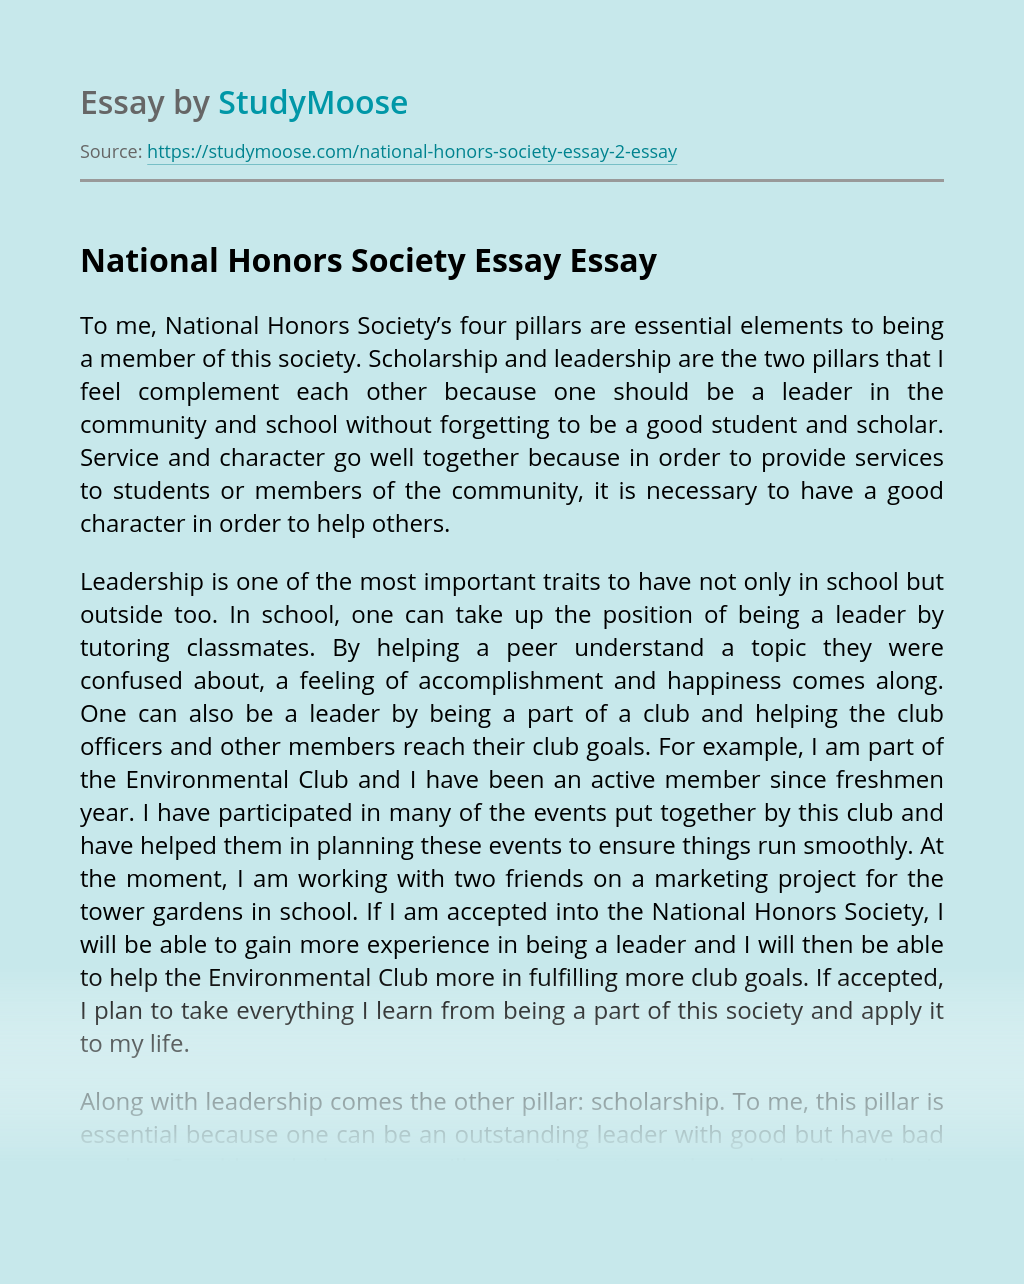 National Honors Society Essay